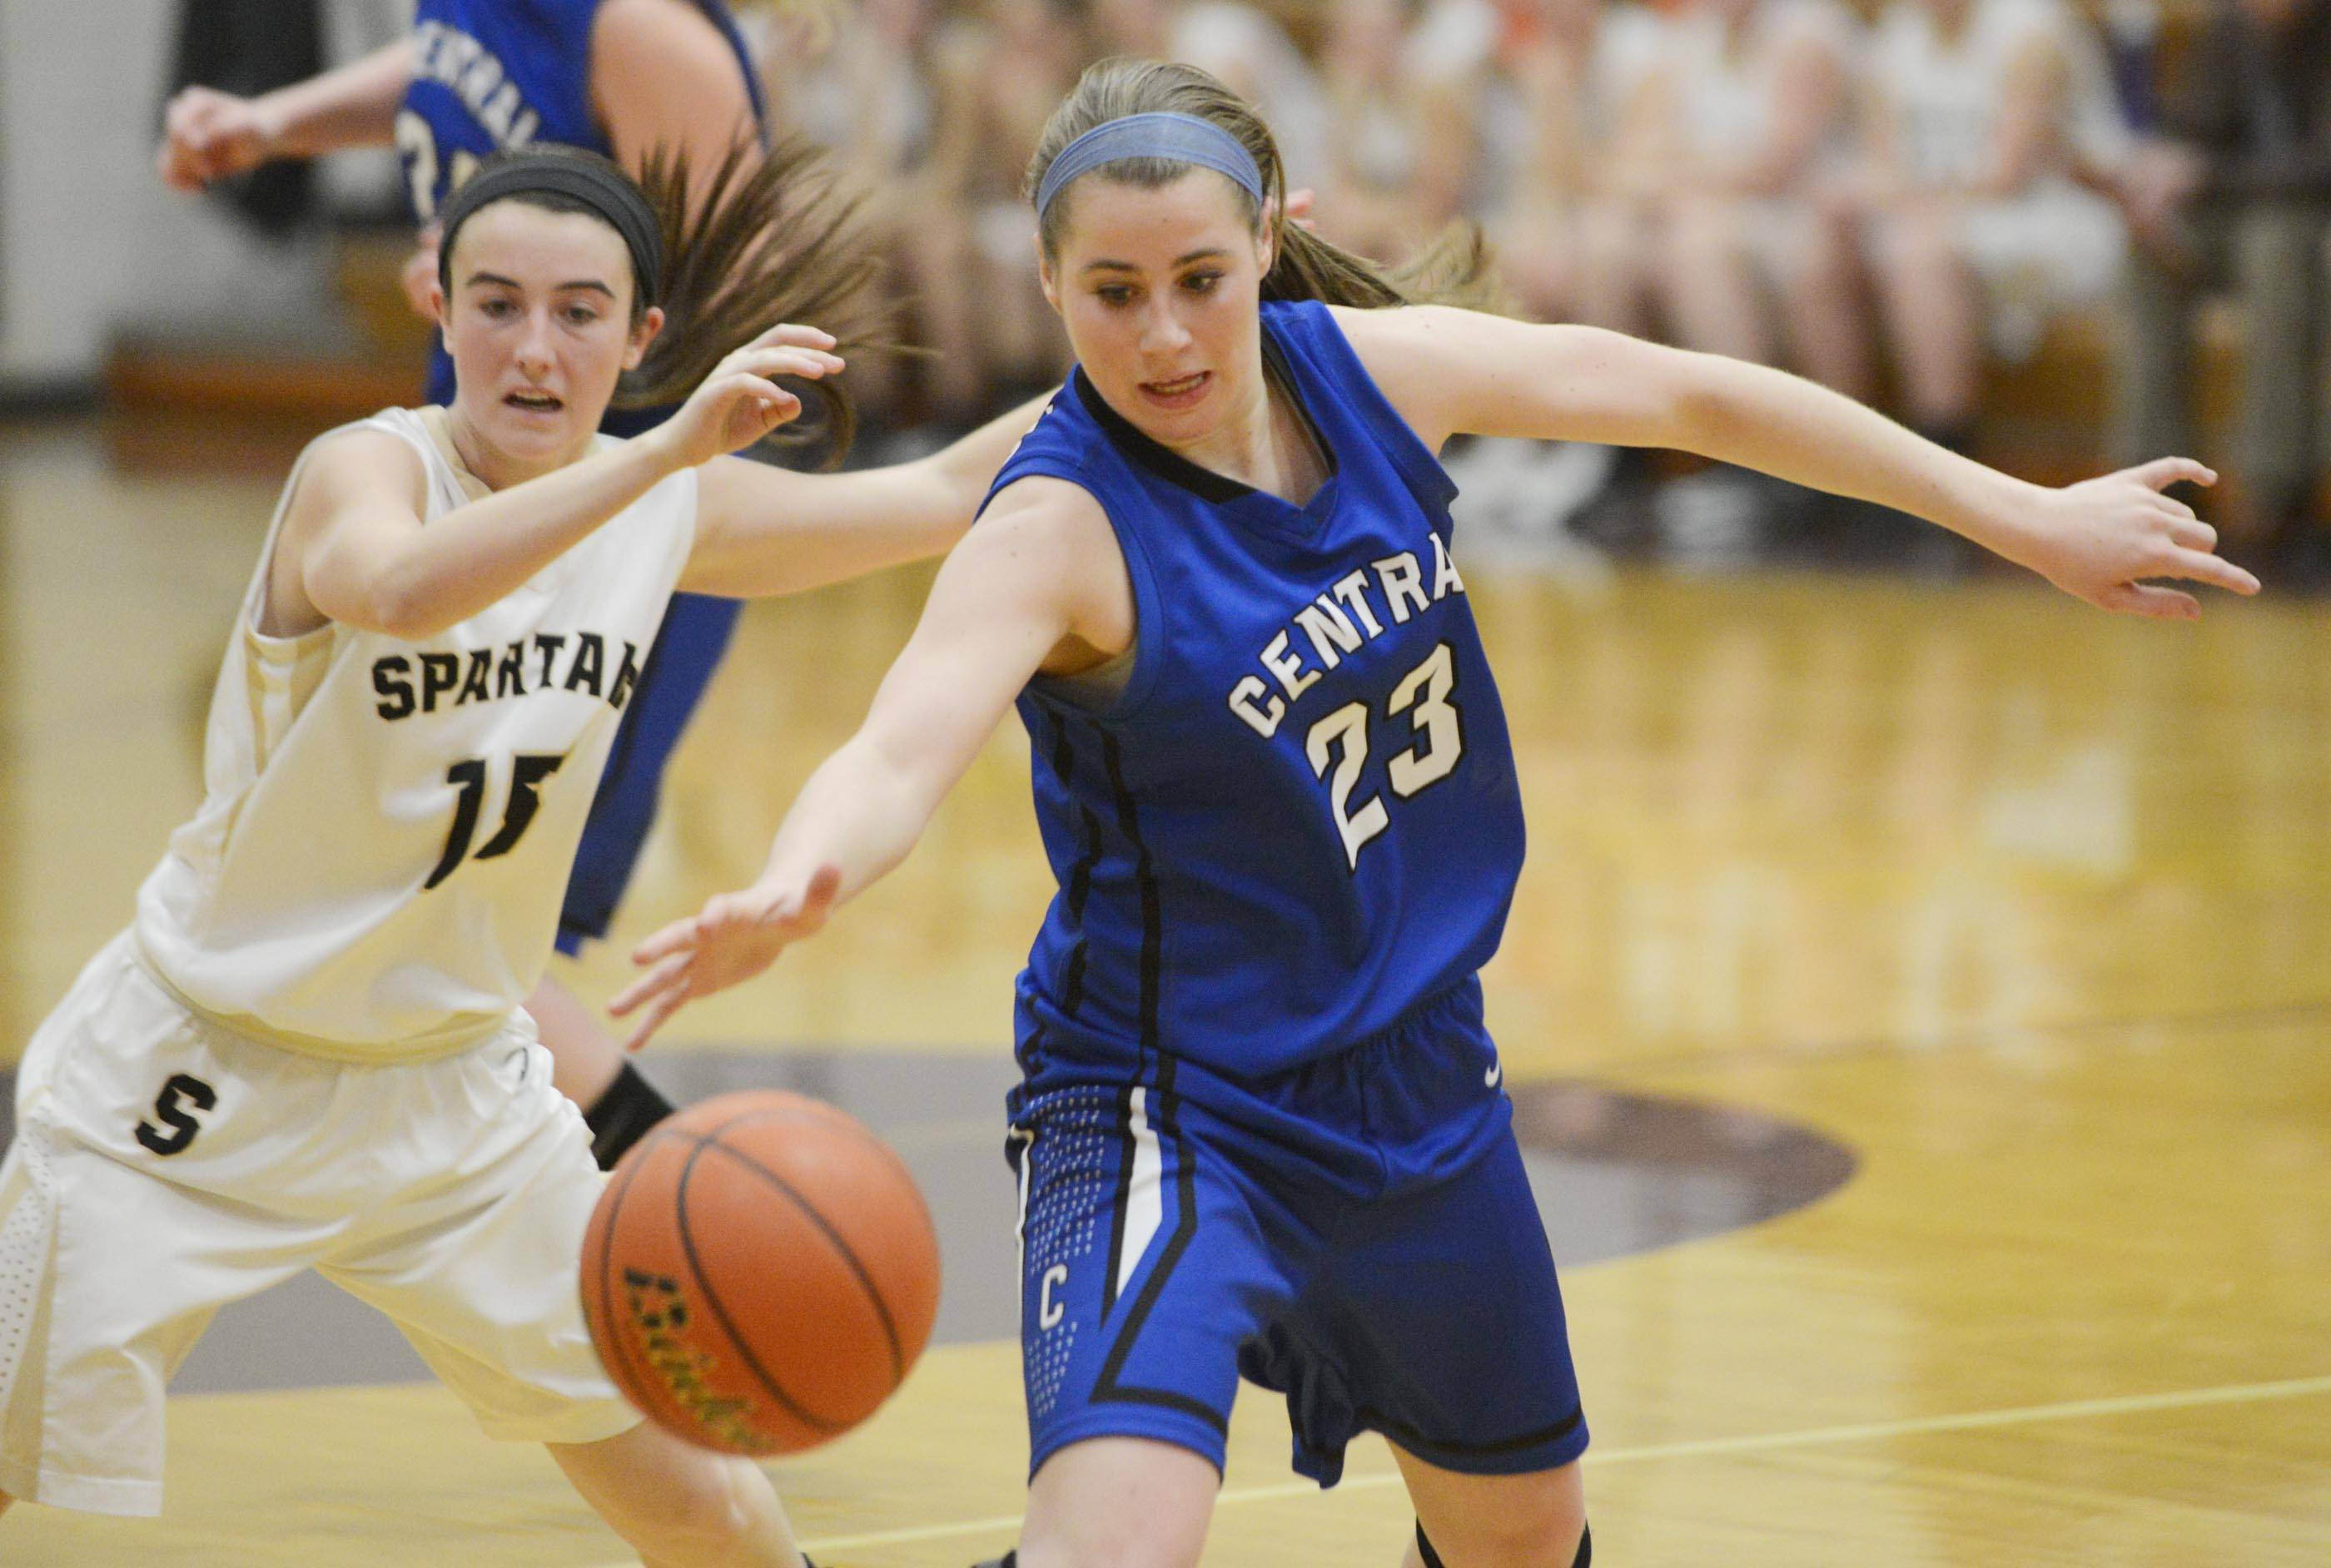 Defense lifts Burlington Central again